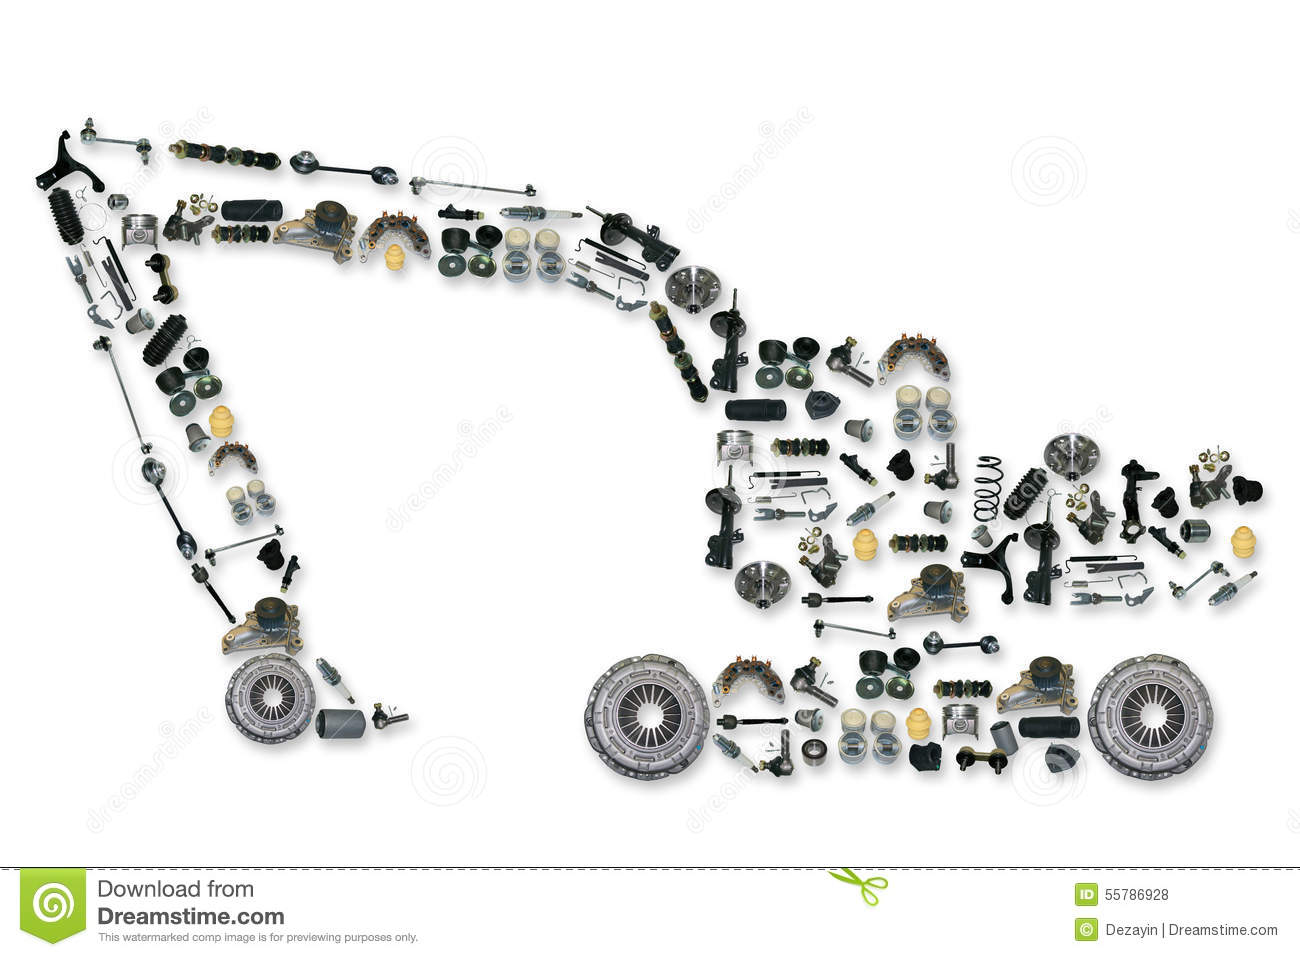 Where to buy spare parts for truck 81